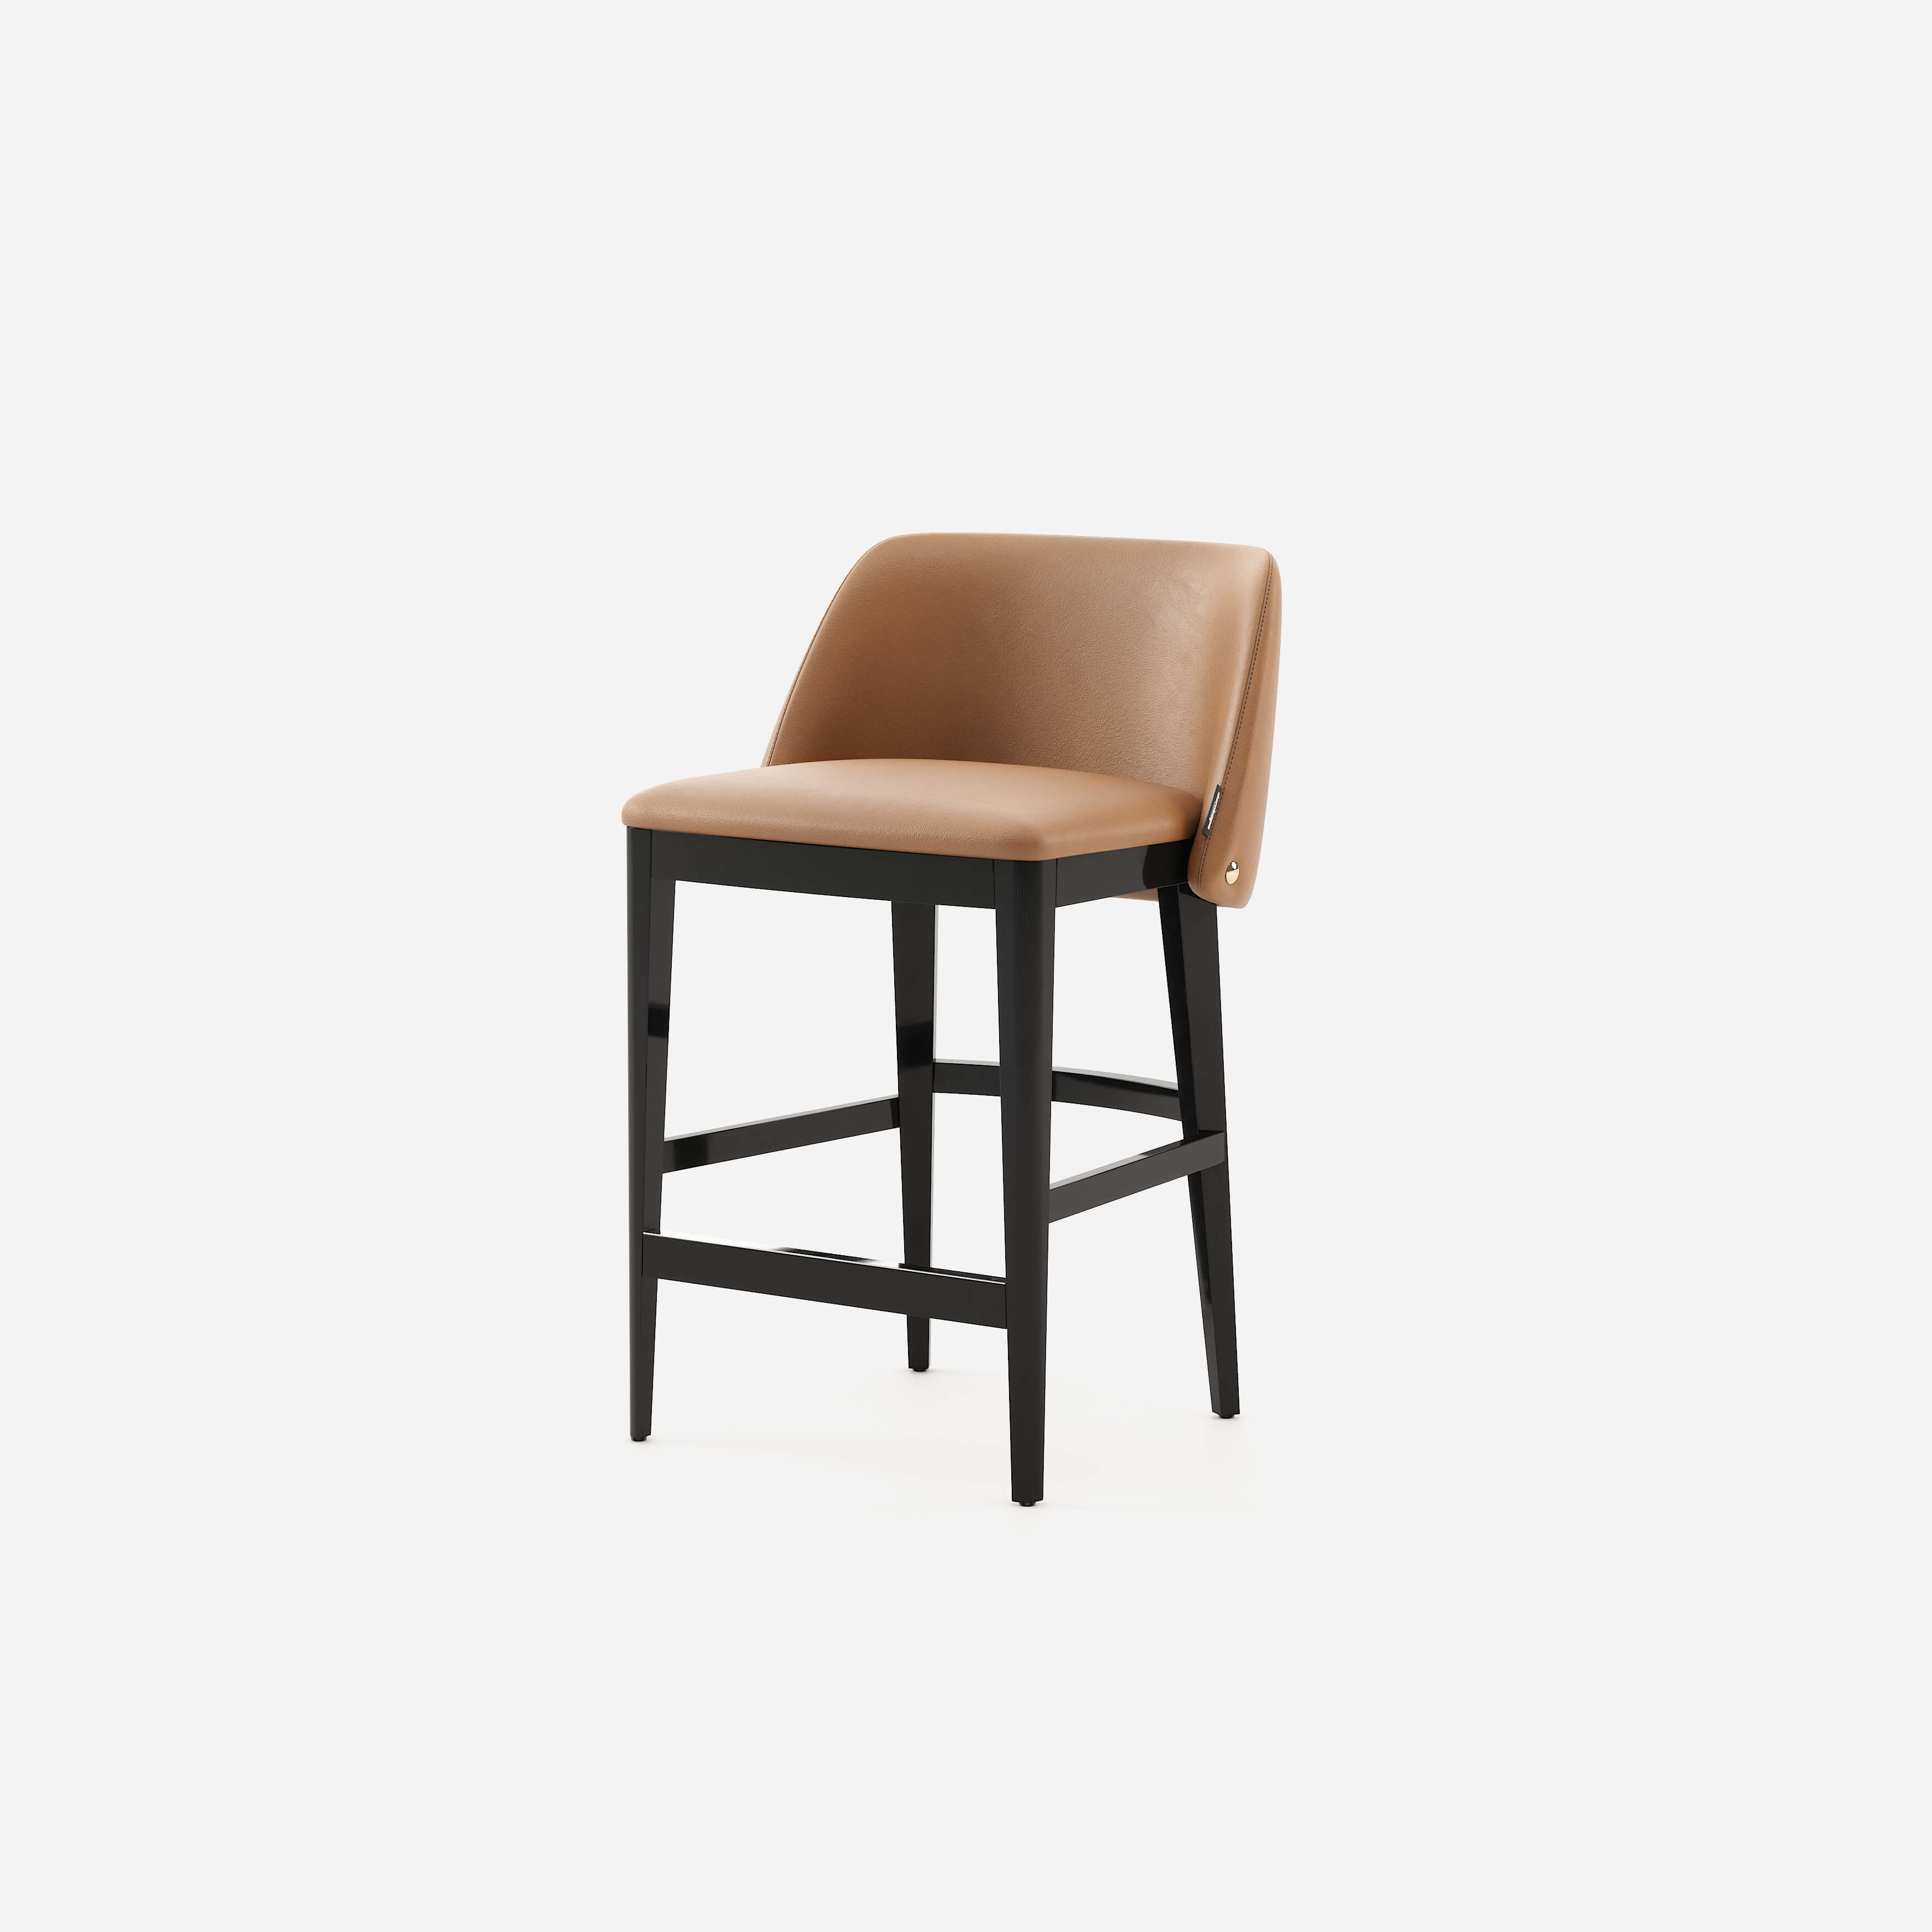 Loren-Counter-Chair-upholstered-furniture-brown-wood-leather-hotel-contract-commercial-restaurant-projects-kitchen-decor-1